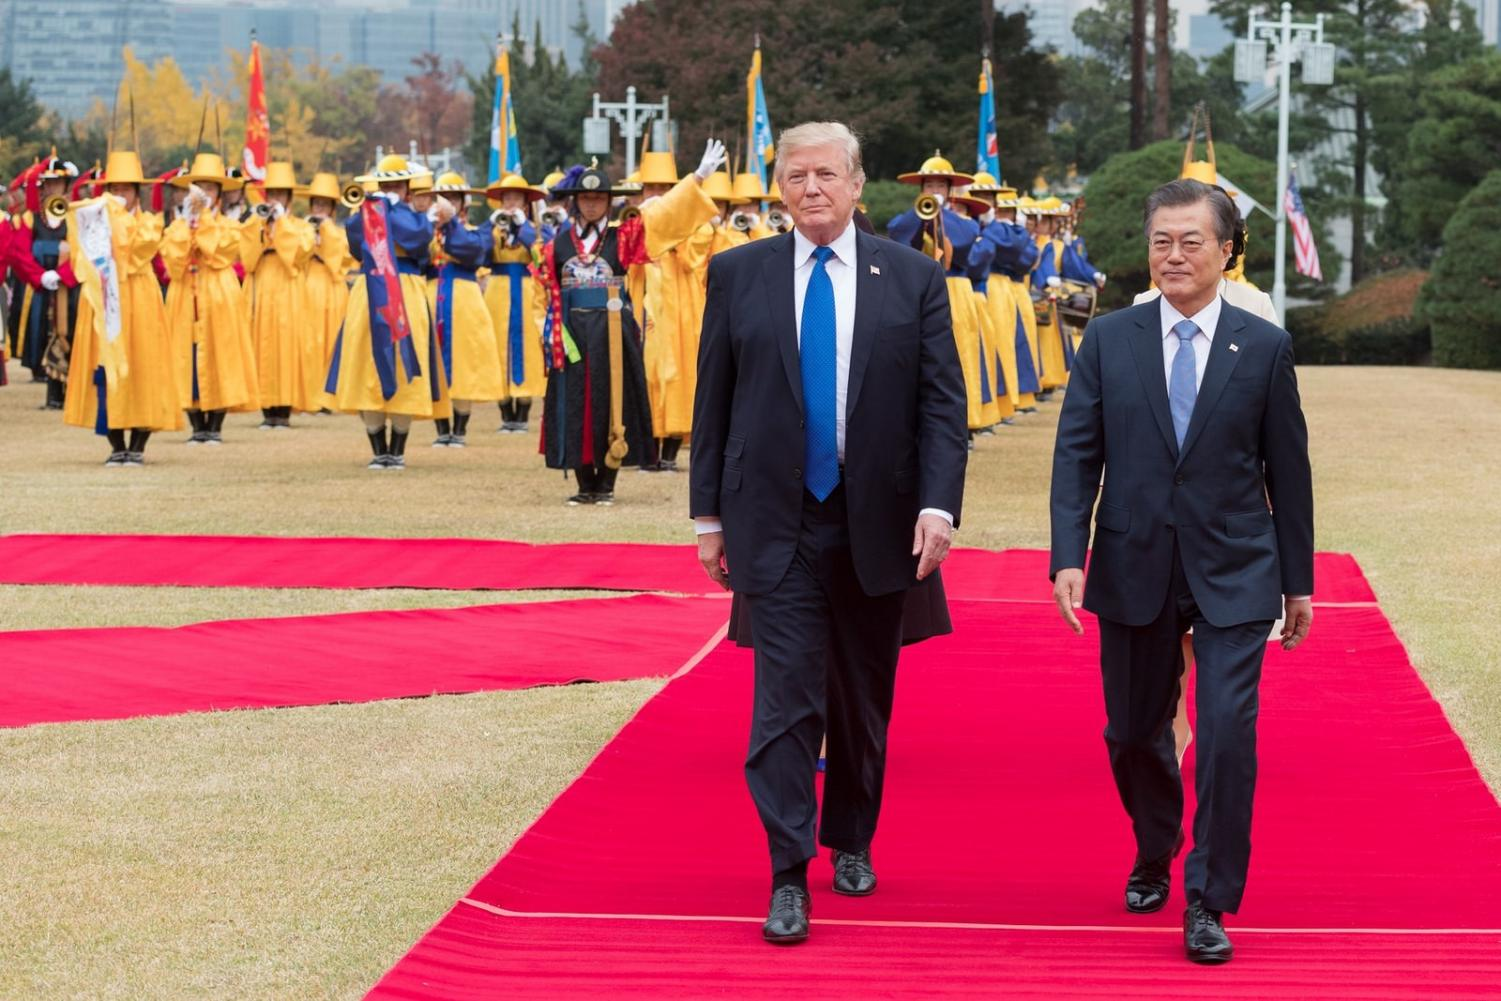 South Korea's President Moon Jae-in welcomes President Trump to his third stop on his trip throughout the Asia-Pacific region.